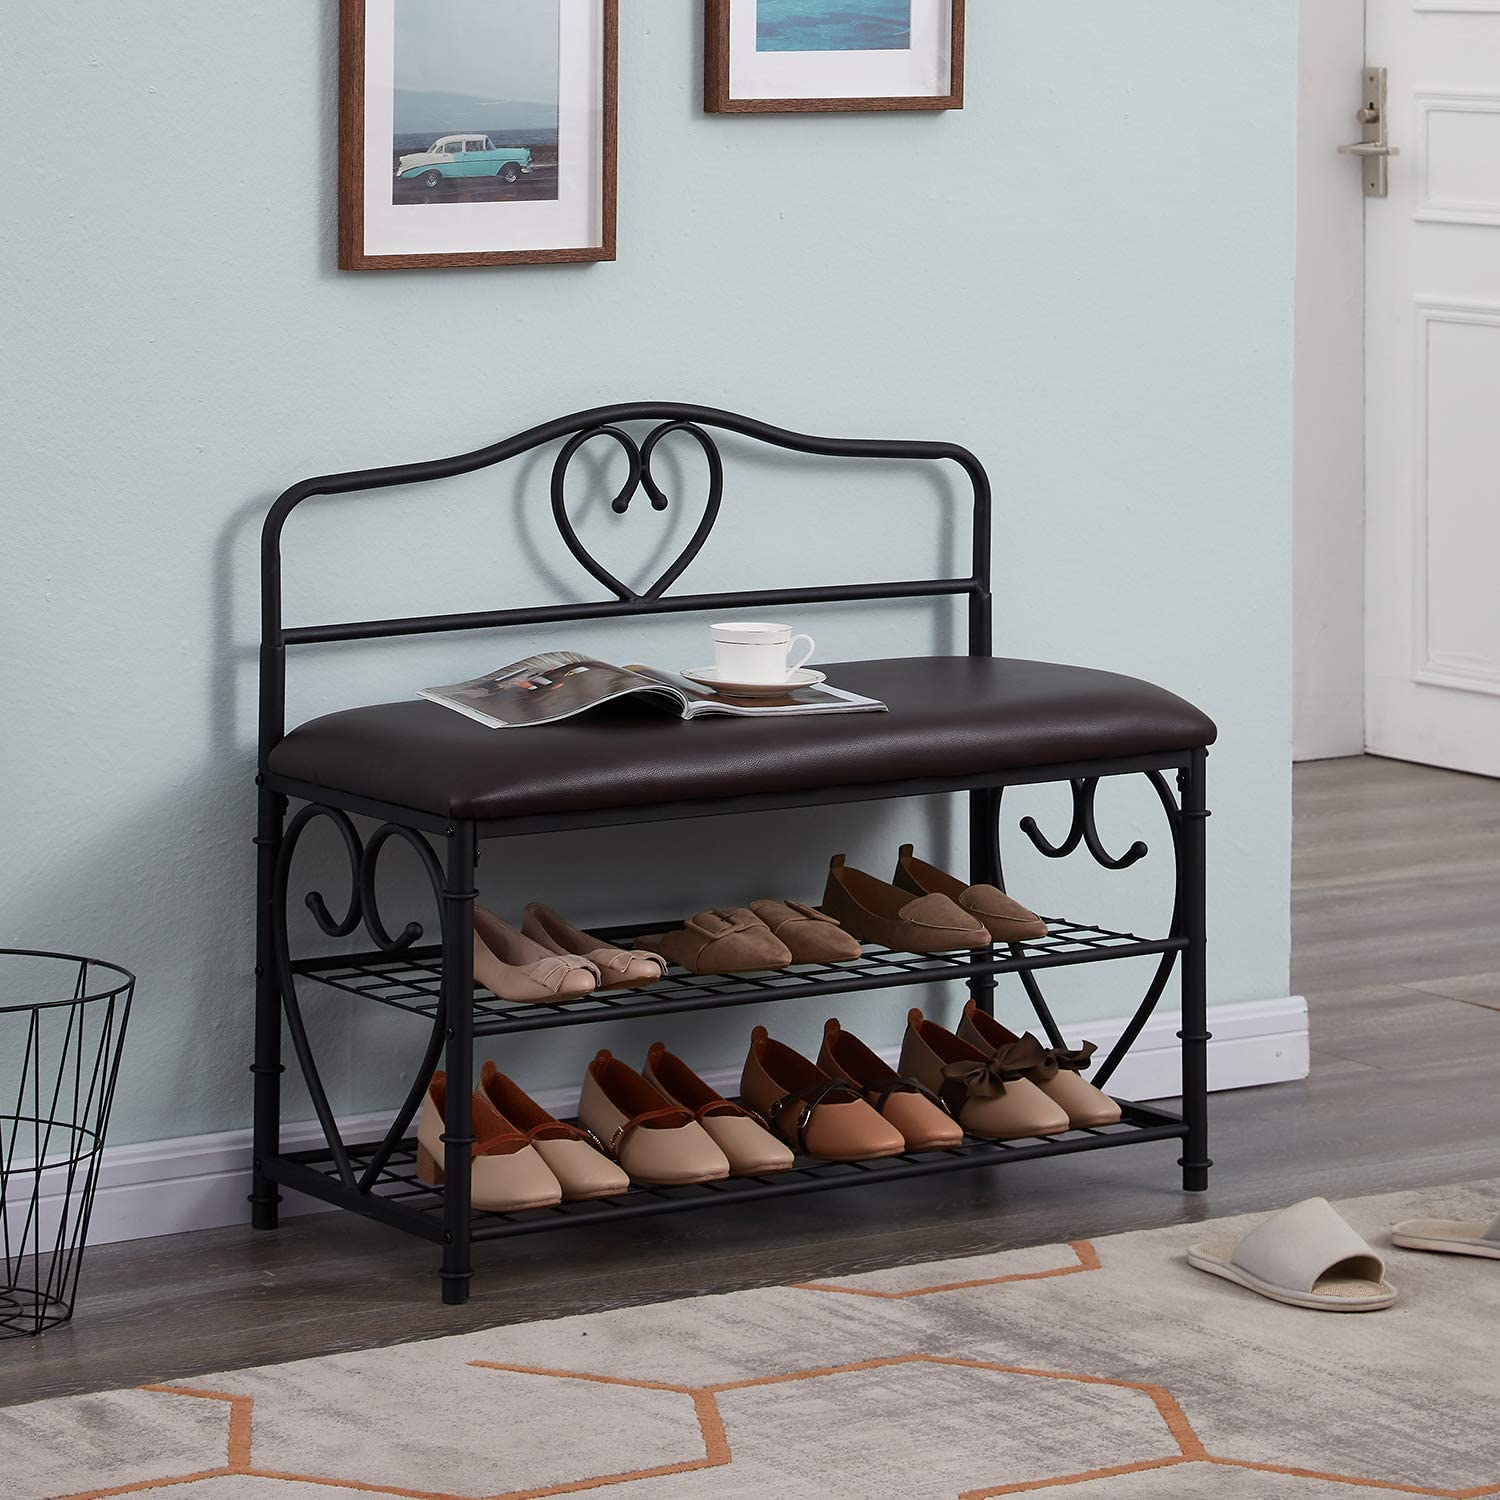 Homissue 3 Tier Entryway Shoe Rack Bench with Mesh Shelf, Industrial Padded Storage Bench for Living Room